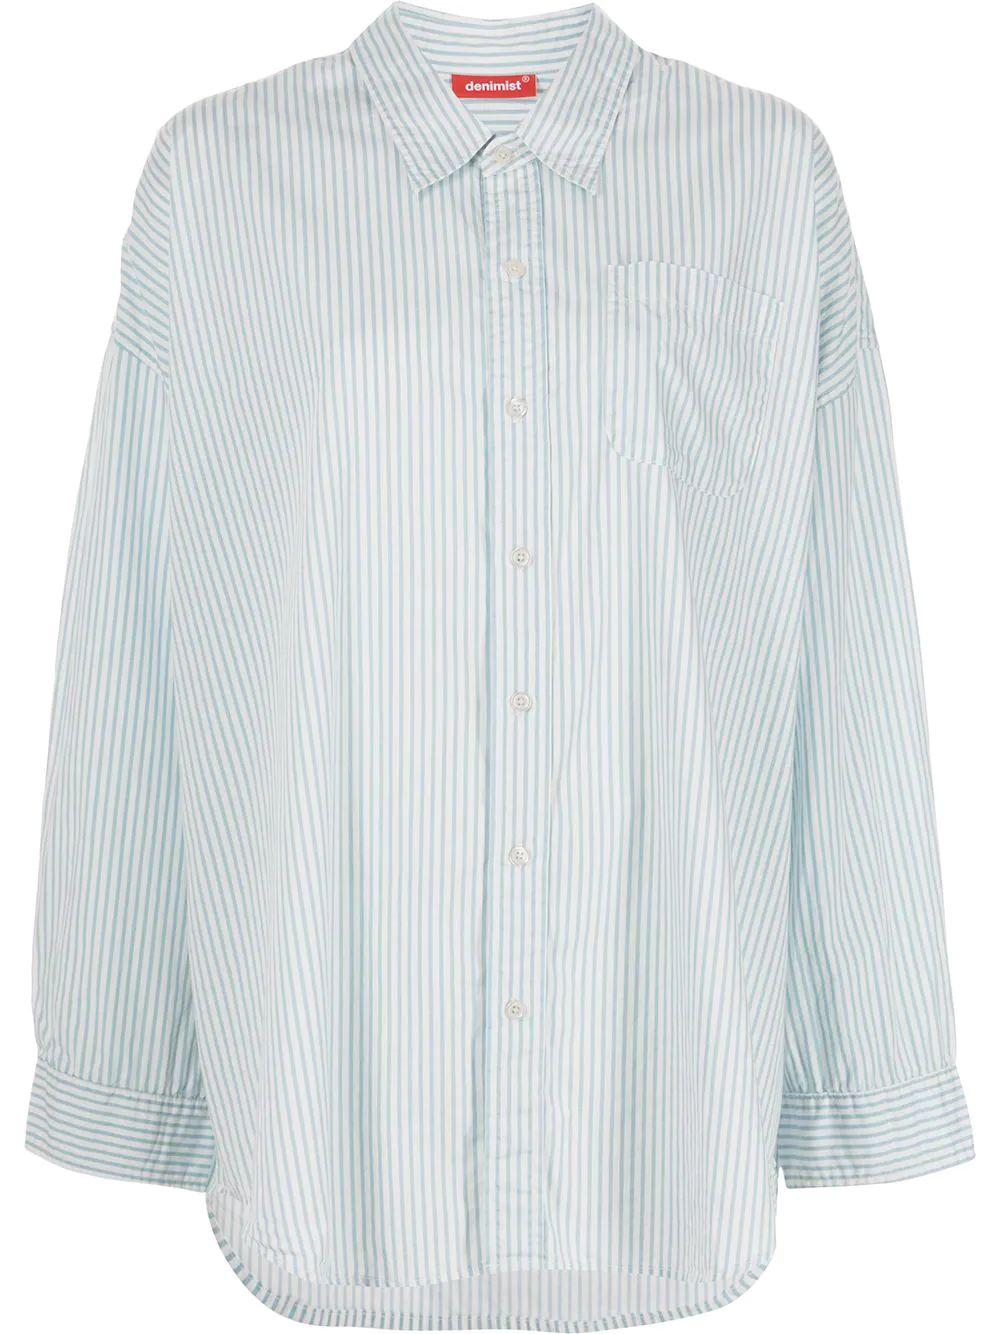 Button Front Striped Shirt Item # DSW4230-480B